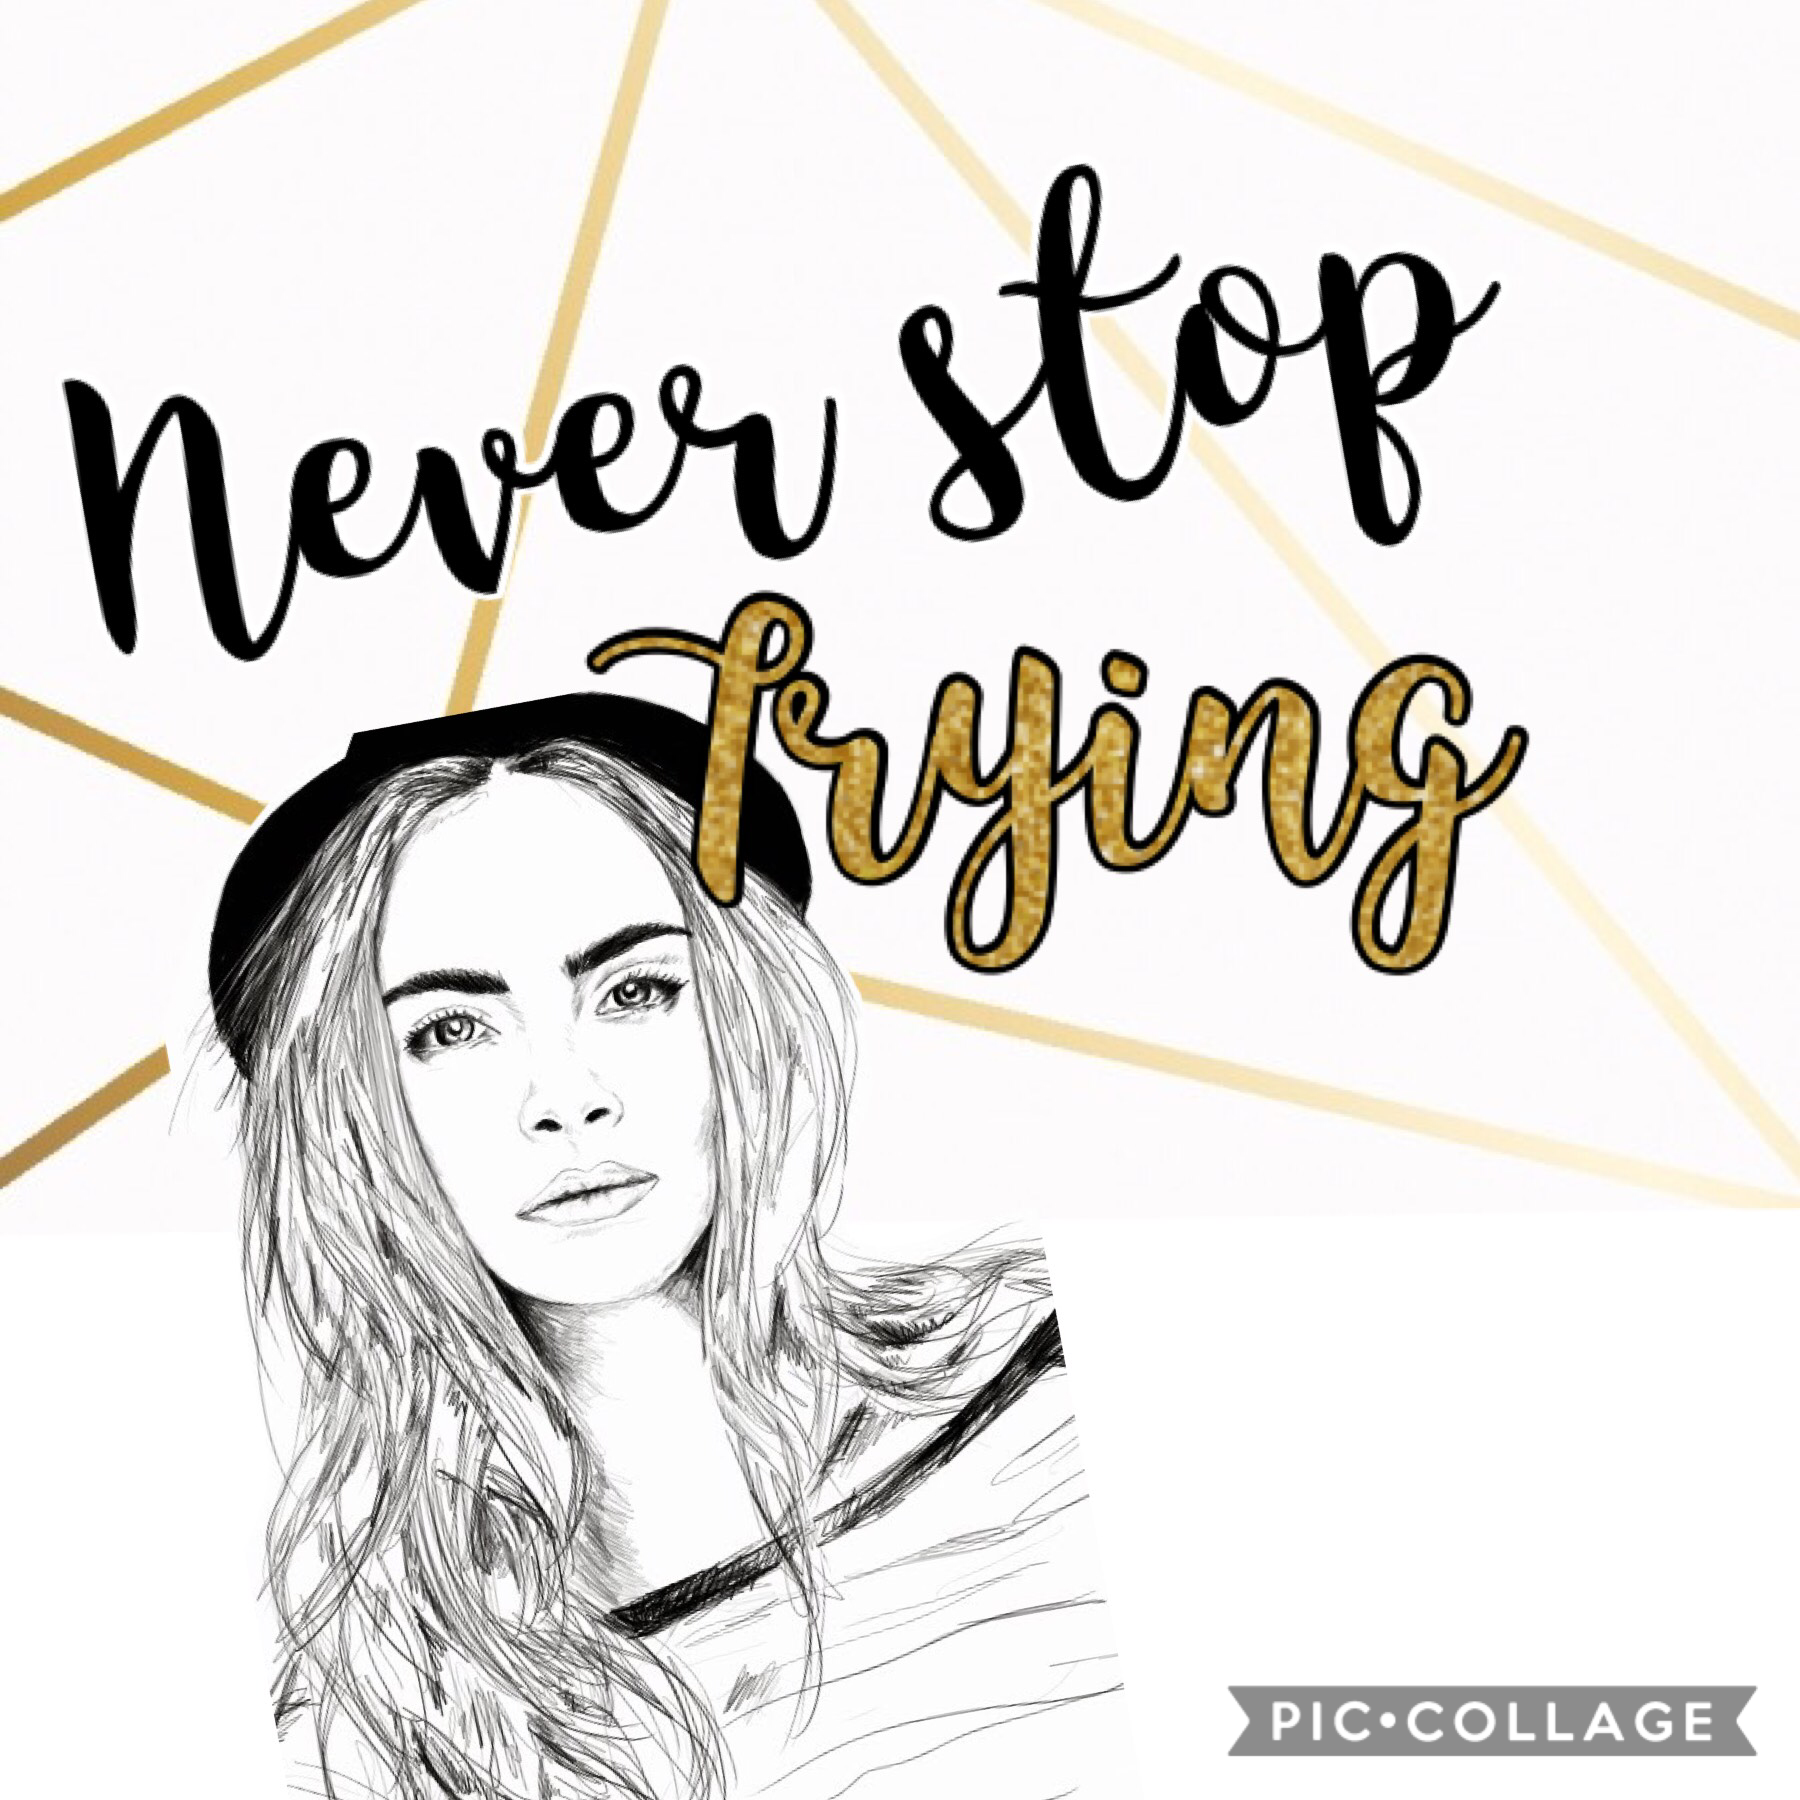 One of my favourite quotes! Hope you enjoy, plz give me honest feedback in the comments about if it is/looks good. Bye and thx  From Madz